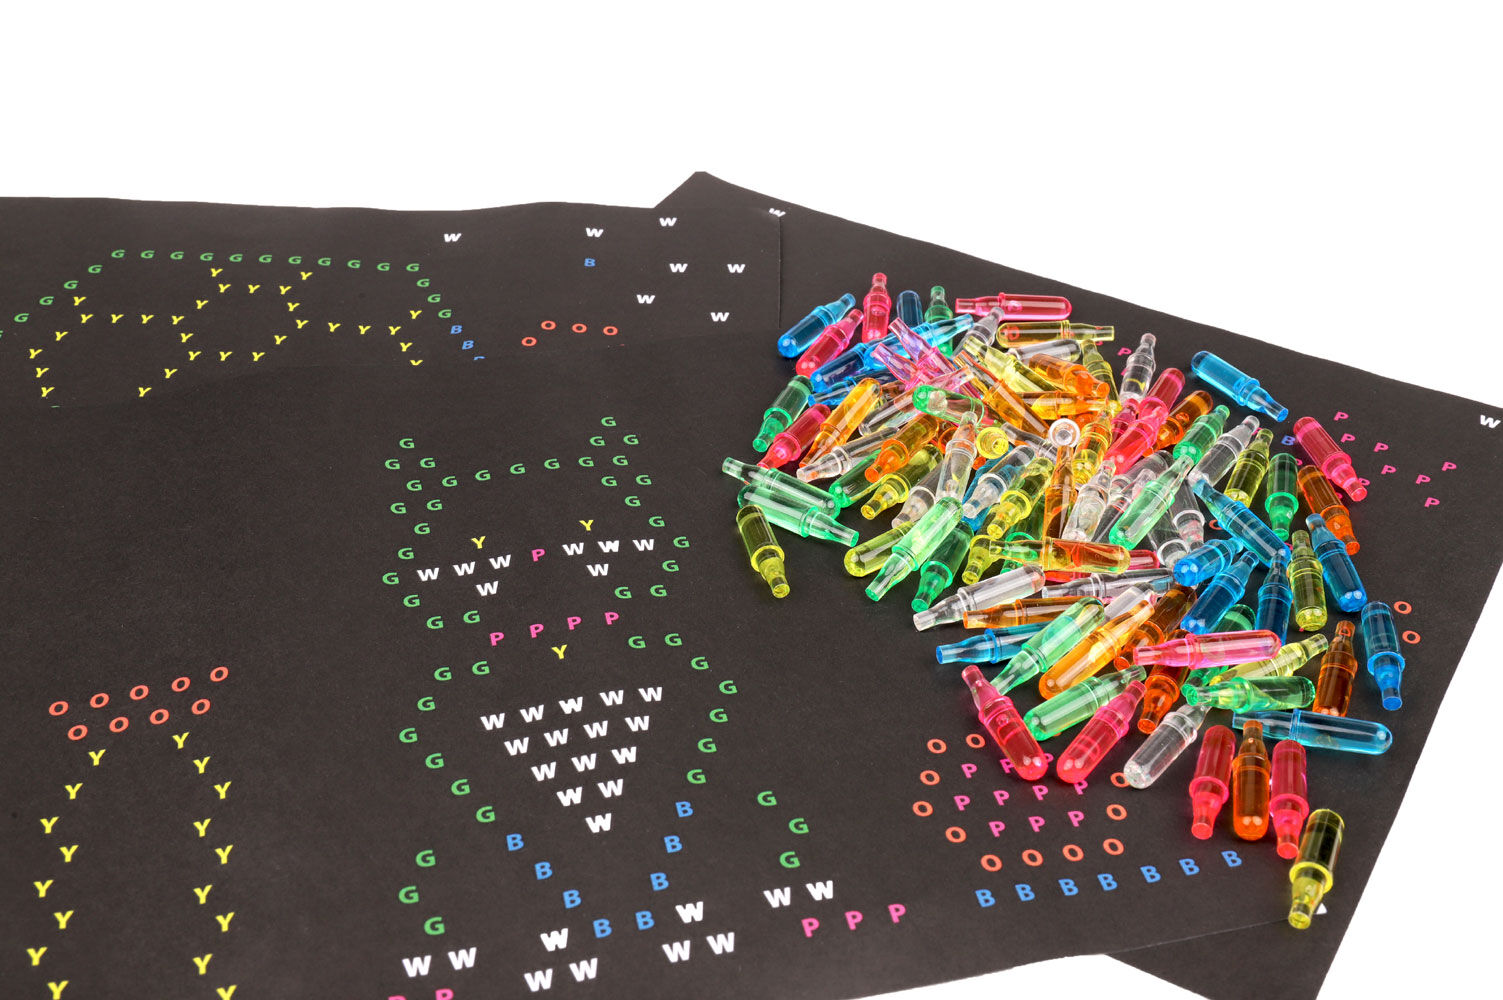 graphic about Lite Brite Refill Sheets Printable Free named Lite-Brite Refill Pack